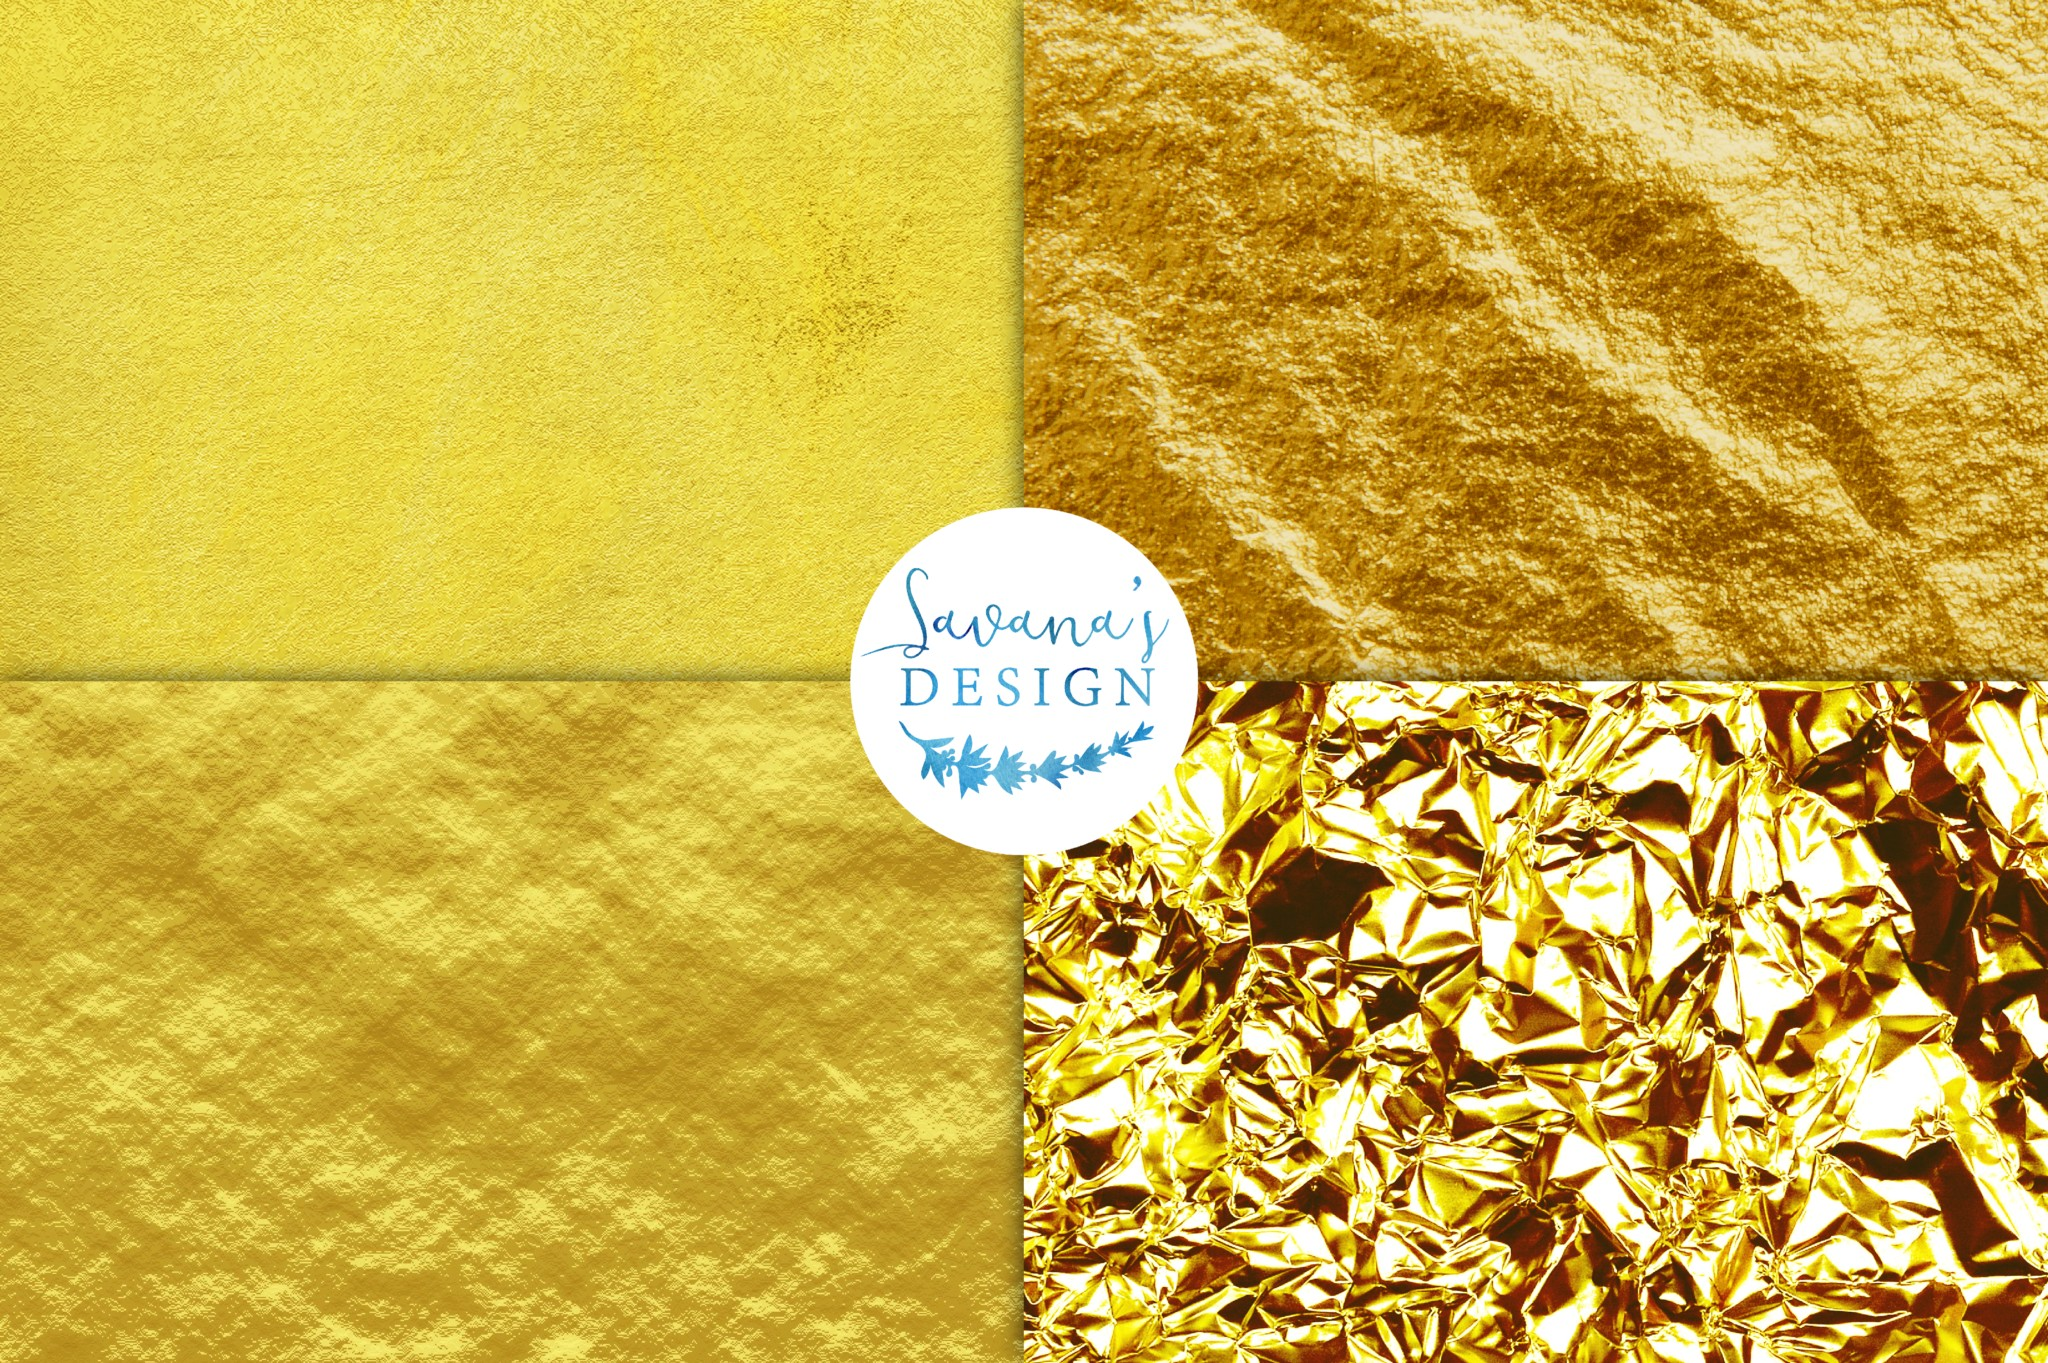 Gold Foil Background 183 ① Download Free Stunning Hd